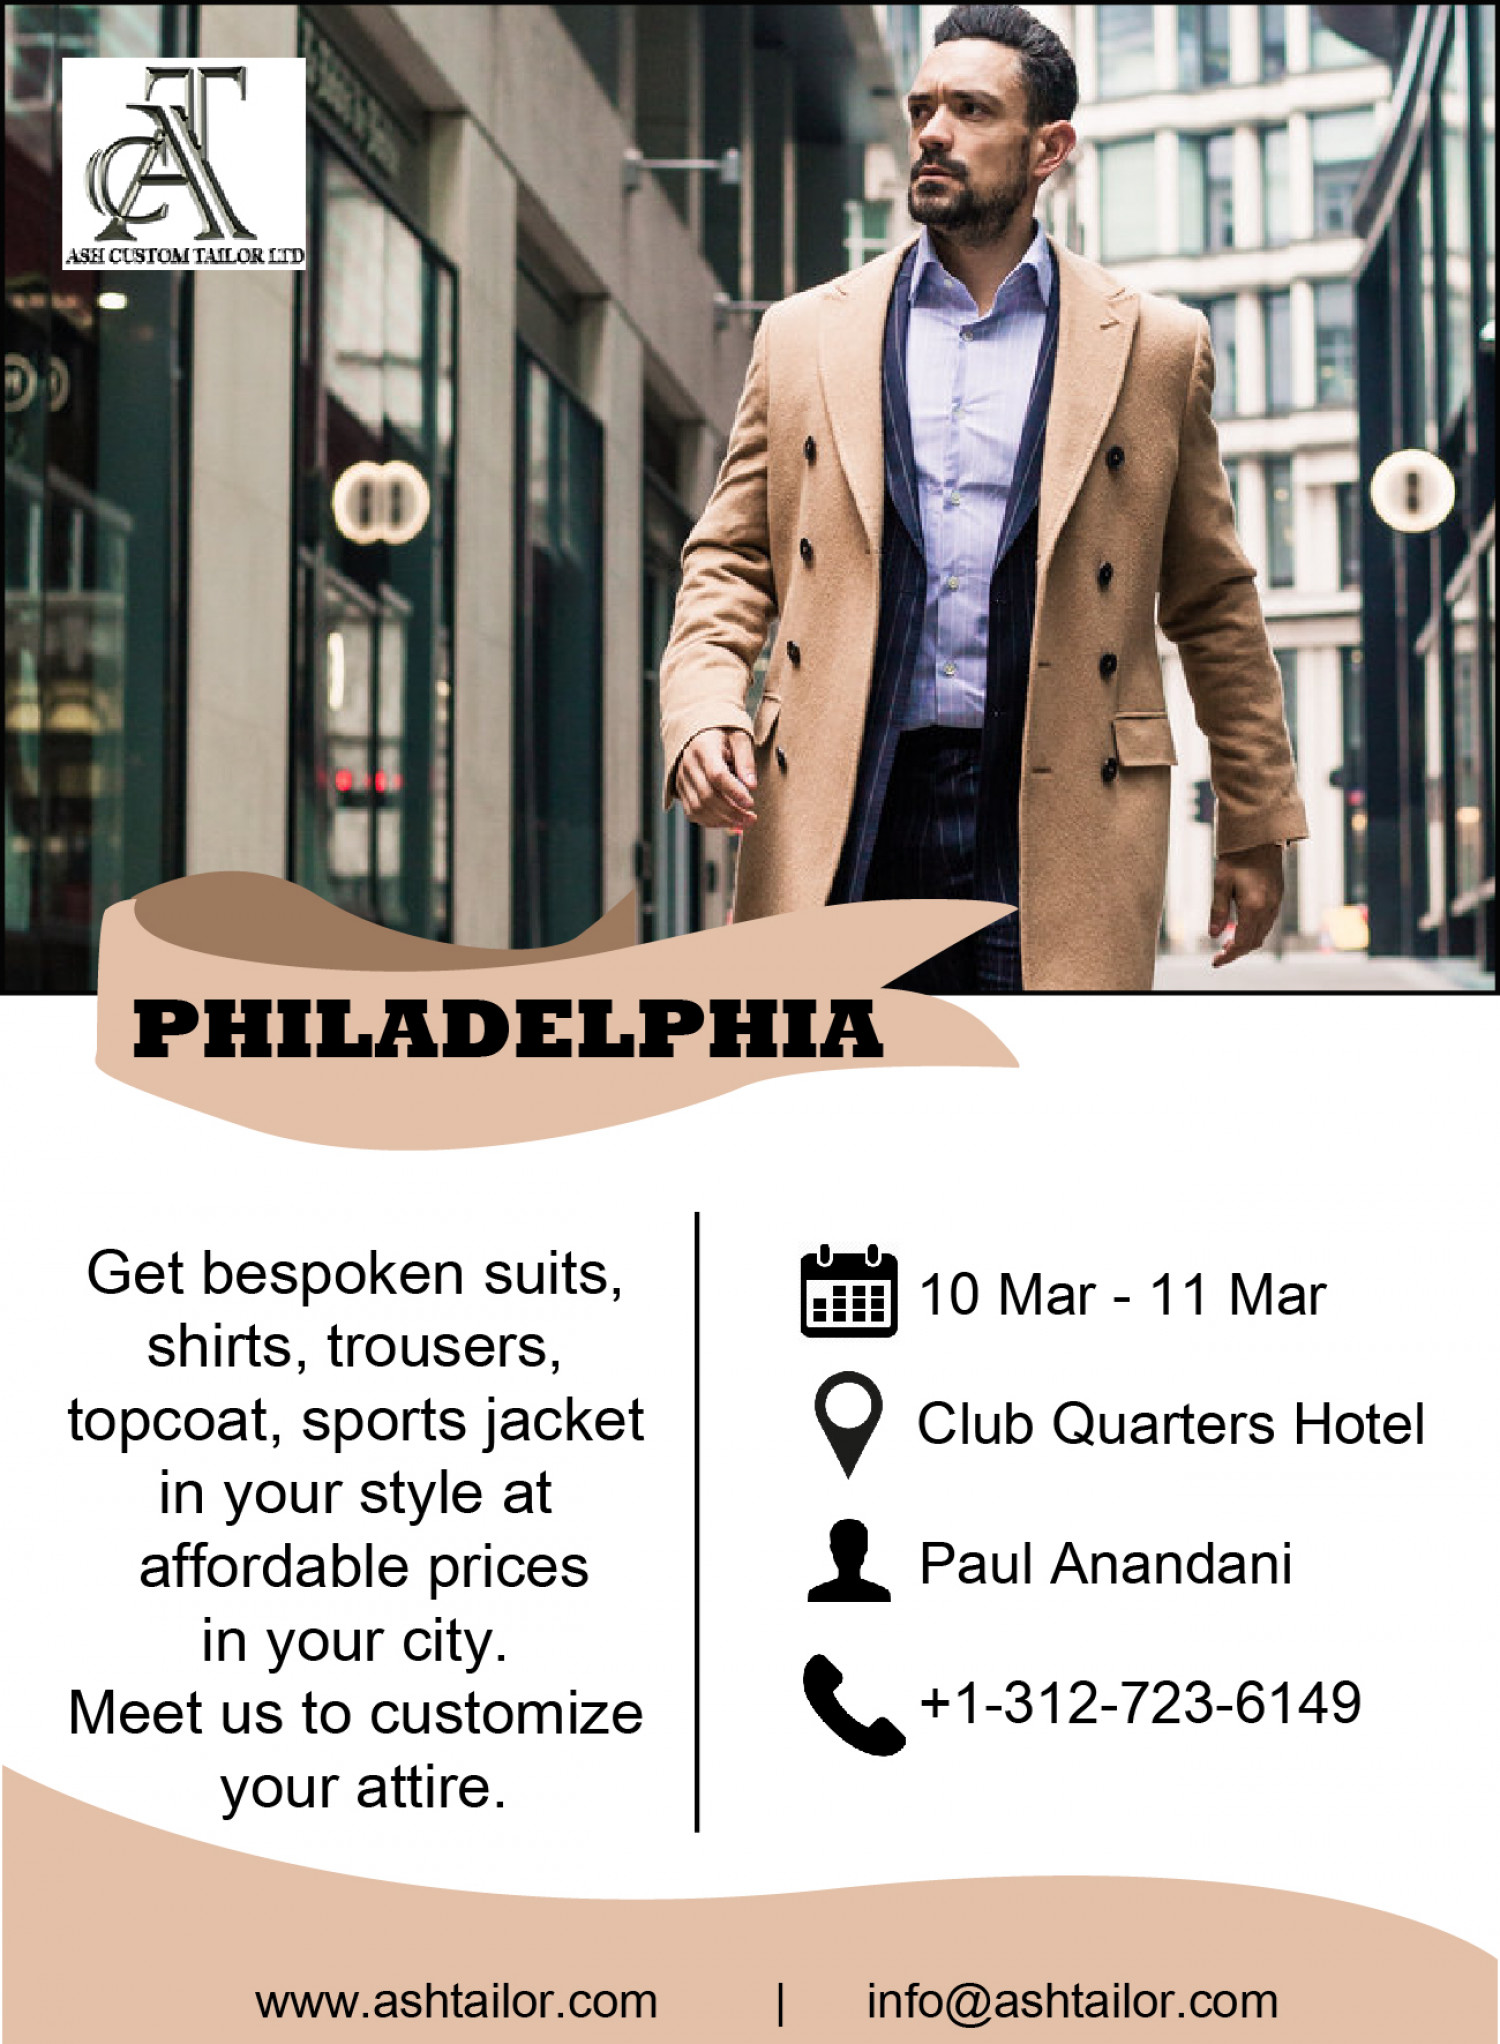 Ash Custom Tailor Philadelphia Tour 2019 Infographic